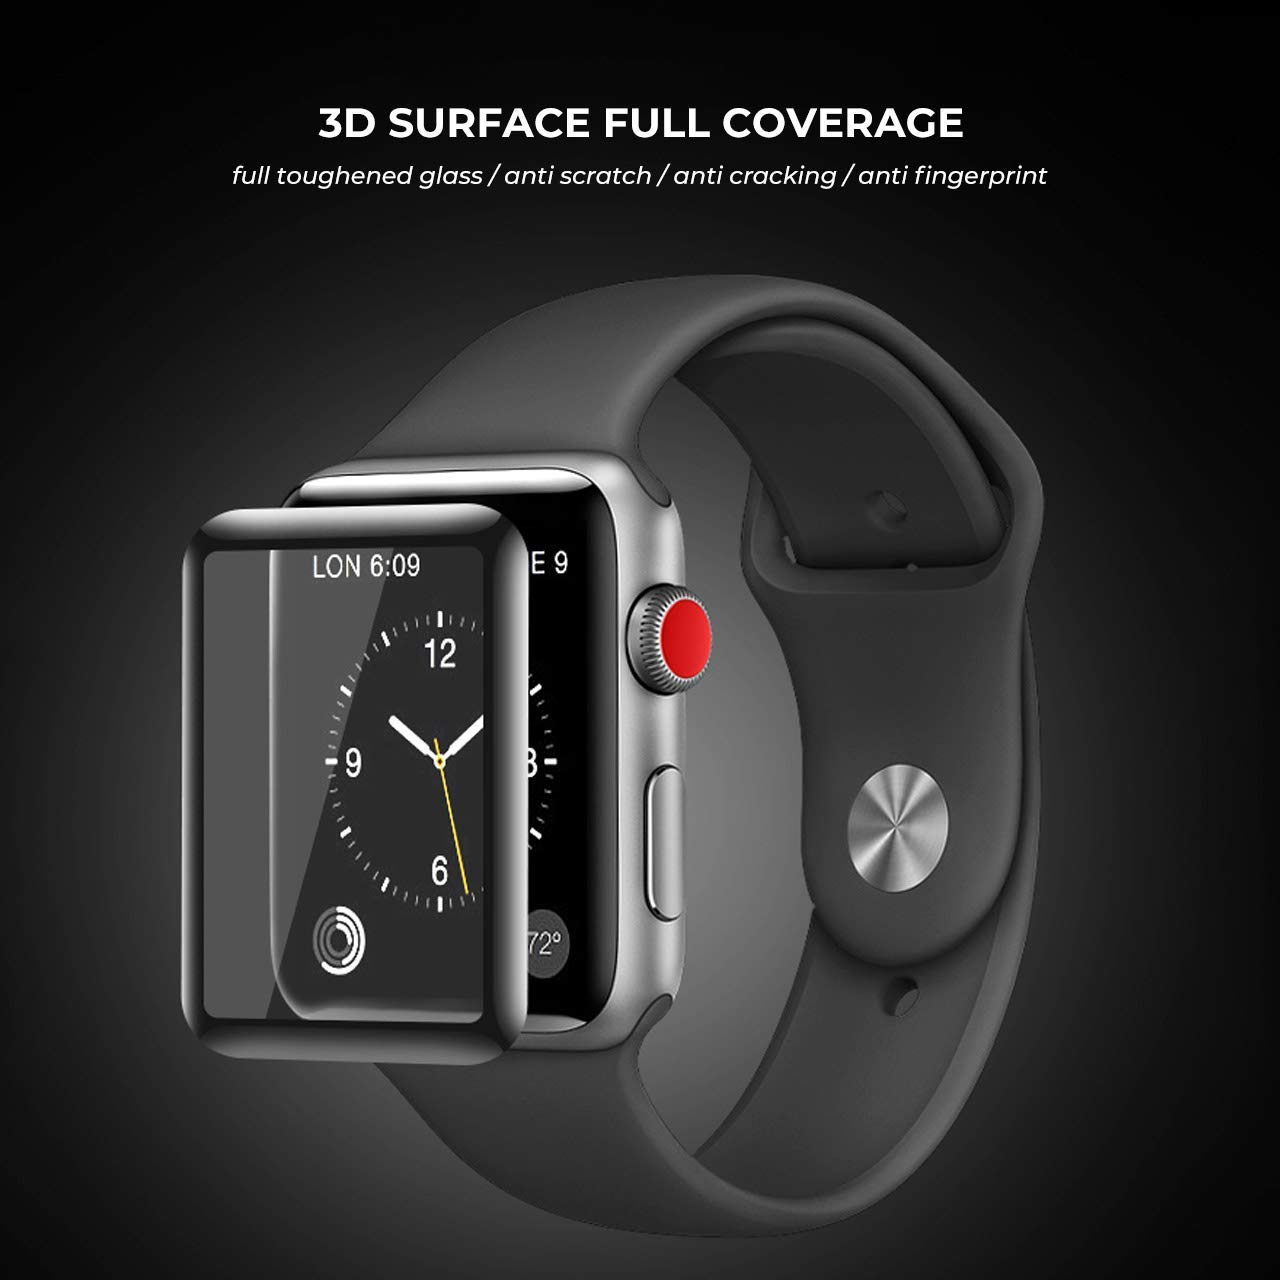 apple watch 38mm/42mm full cover screen protector